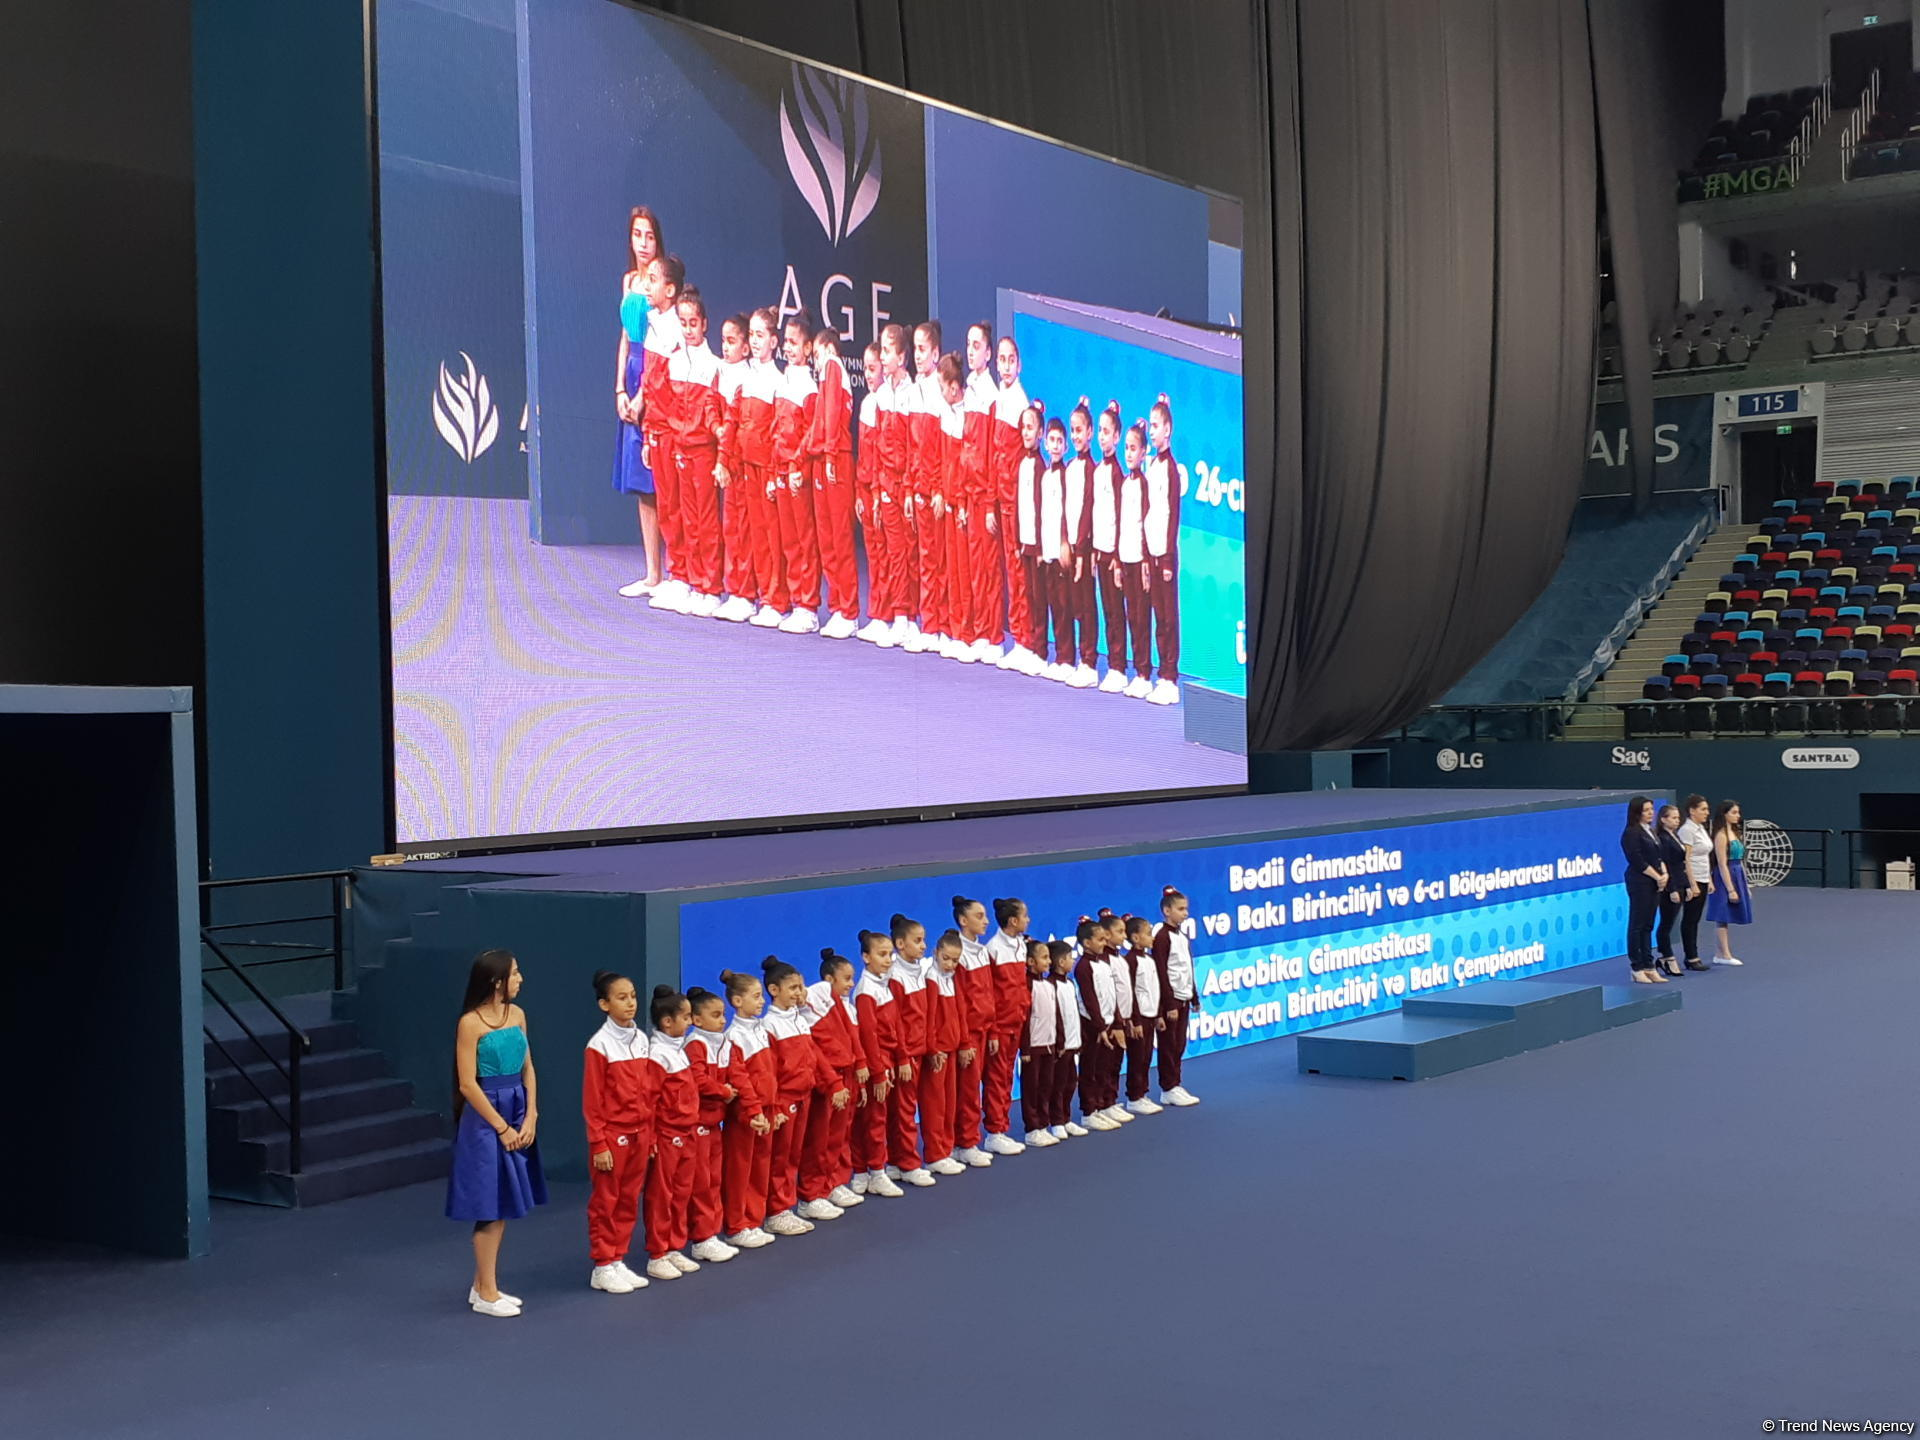 Awarding ceremony held for winners of 26th Azerbaijan and Baku Championships in Rhythmic Gymnastics and 5th Azerbaijan and Baku Championships in Aerobic Gymnastics